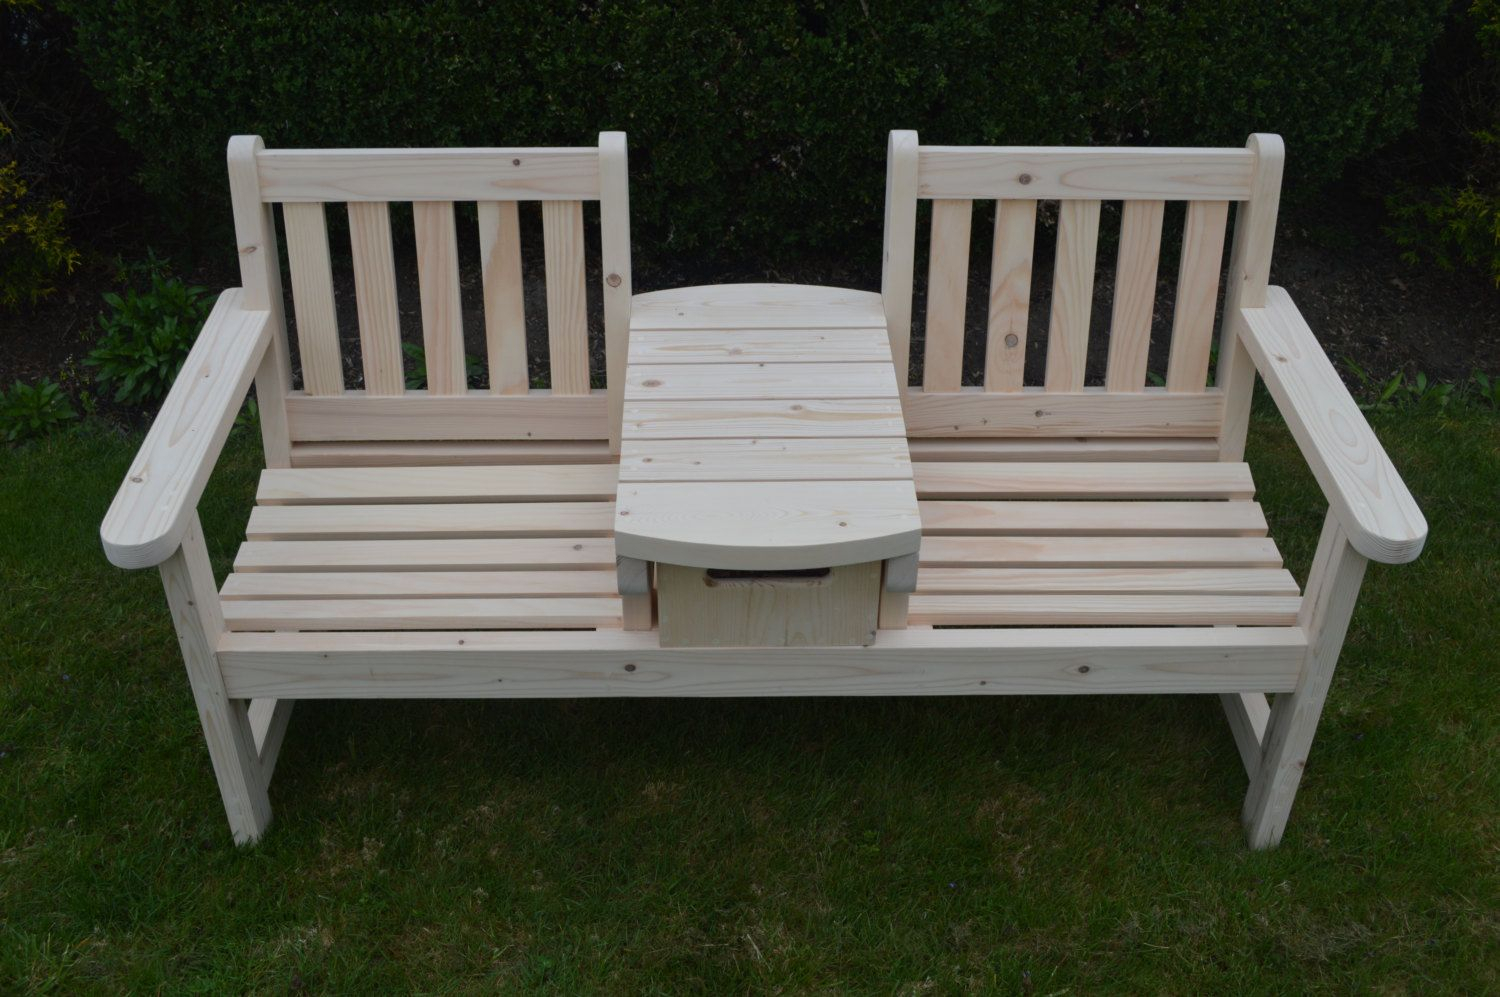 English Twin Seater Bench With Table And Wood Crate Drawer Throughout Twin Seat Glider Benches (View 17 of 25)